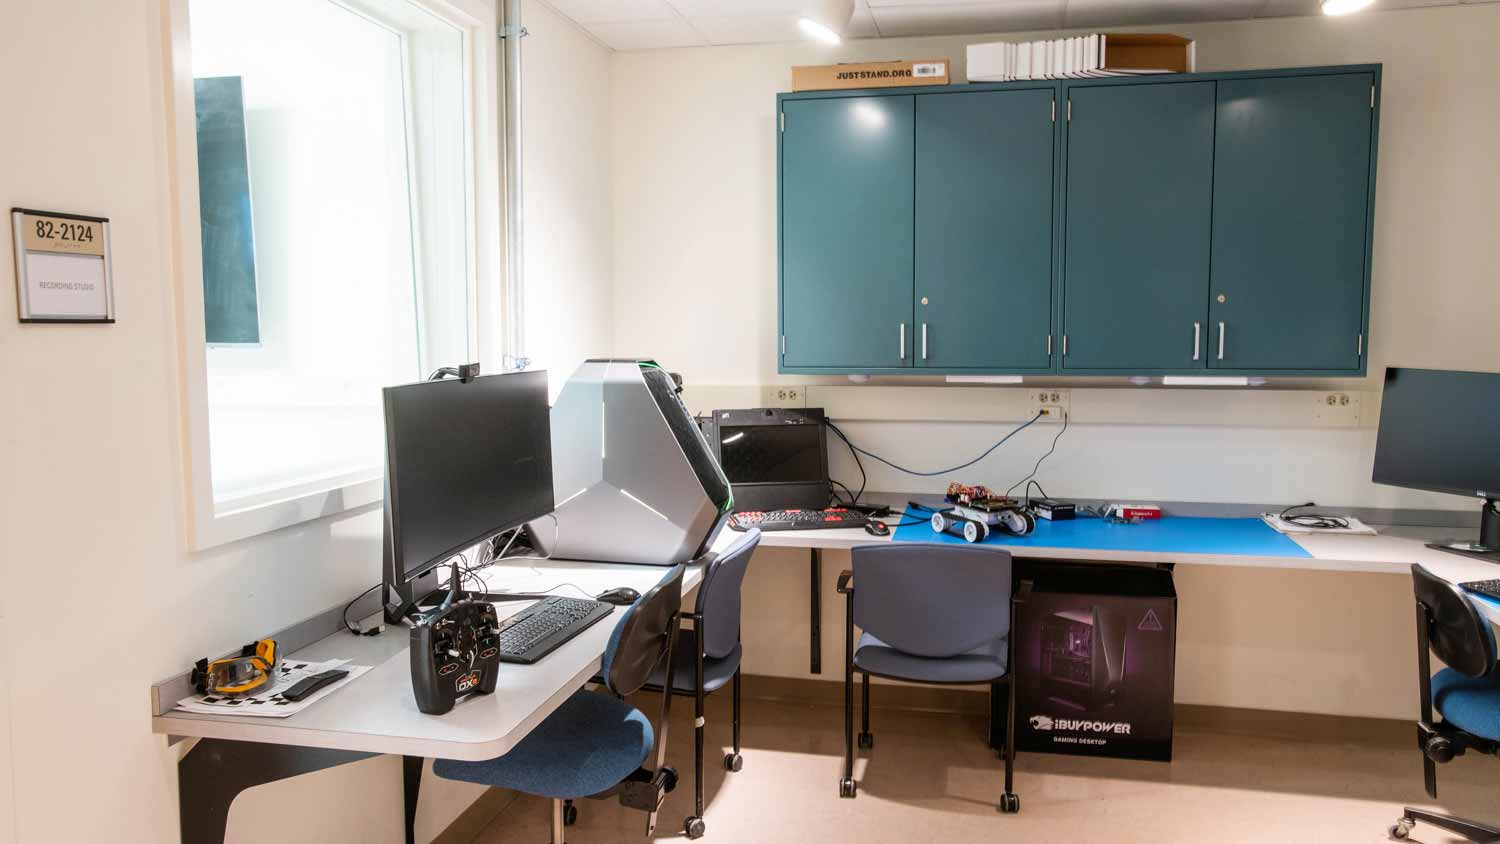 Faculty Research Lab A